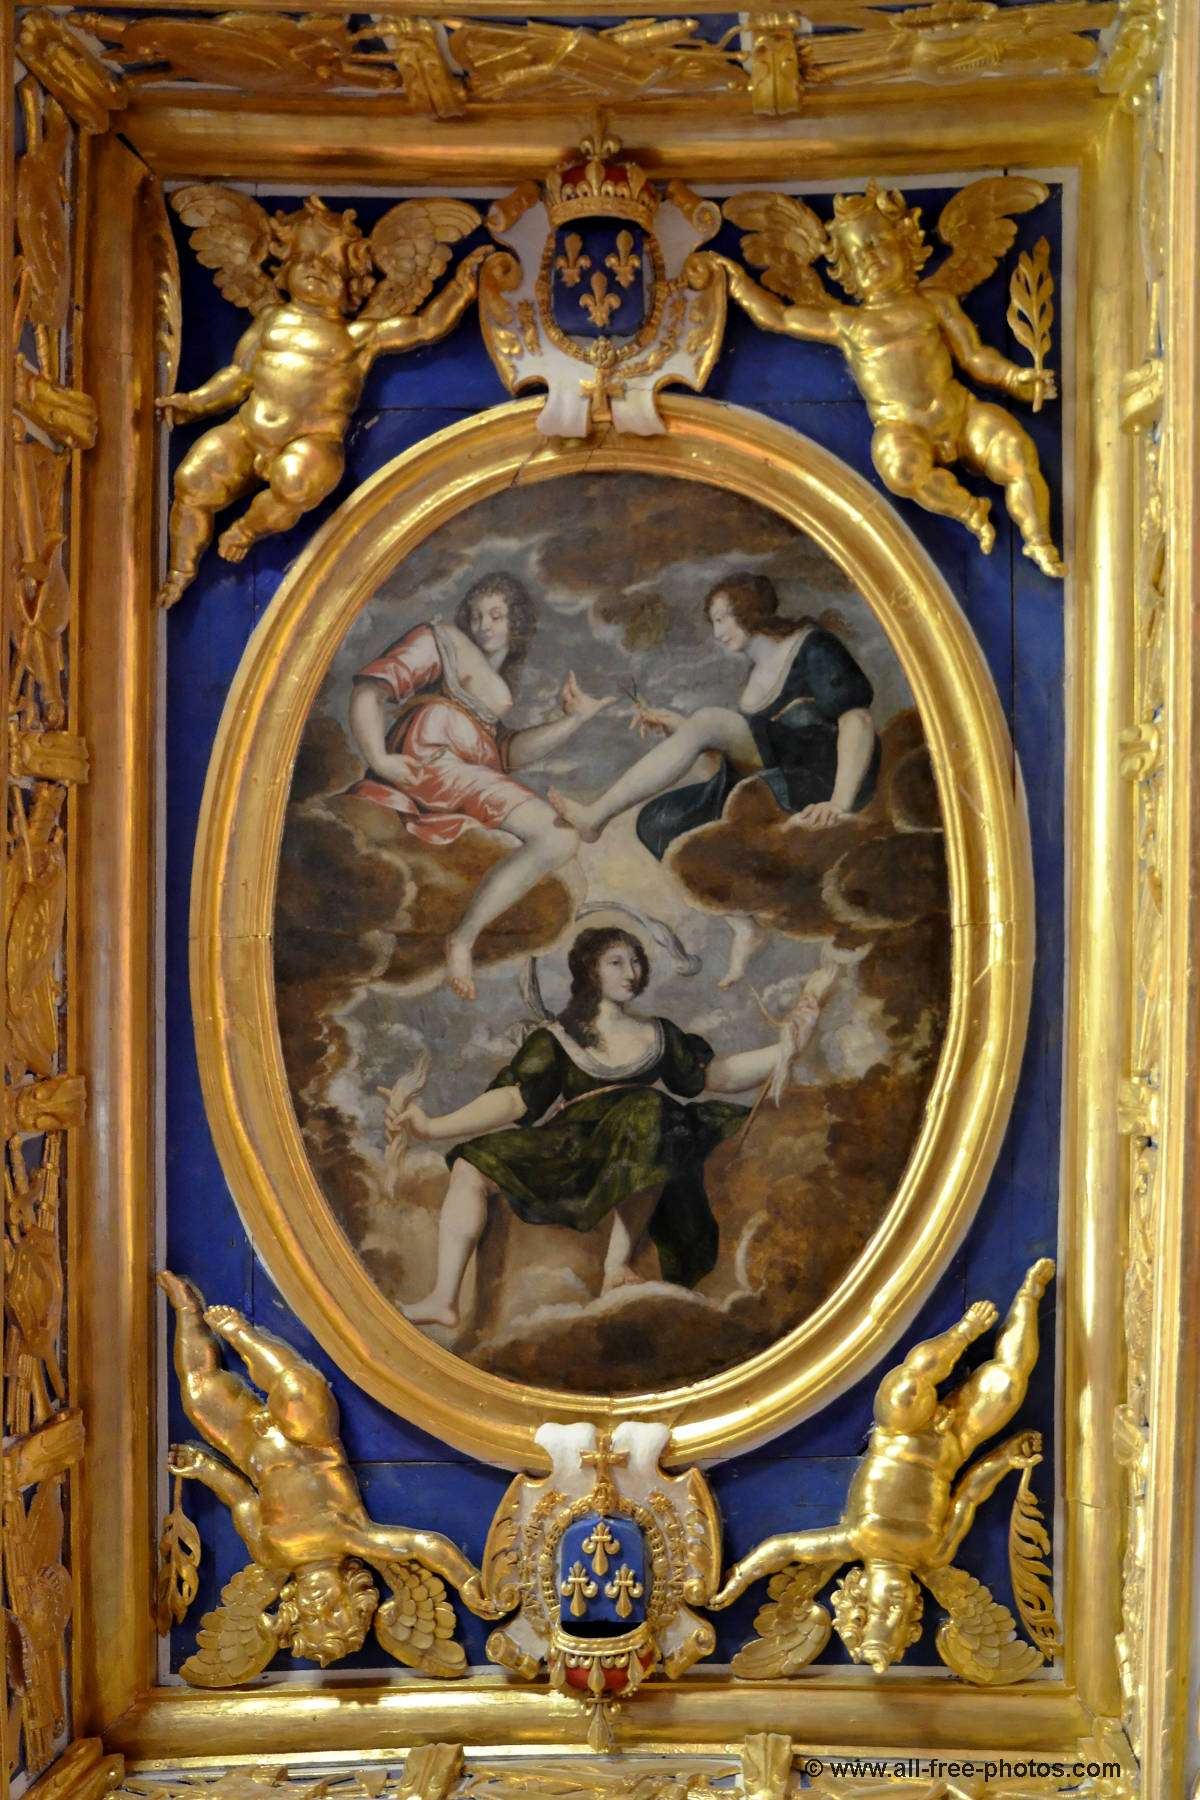 Medallion of ceiling - Chateau of Oiron